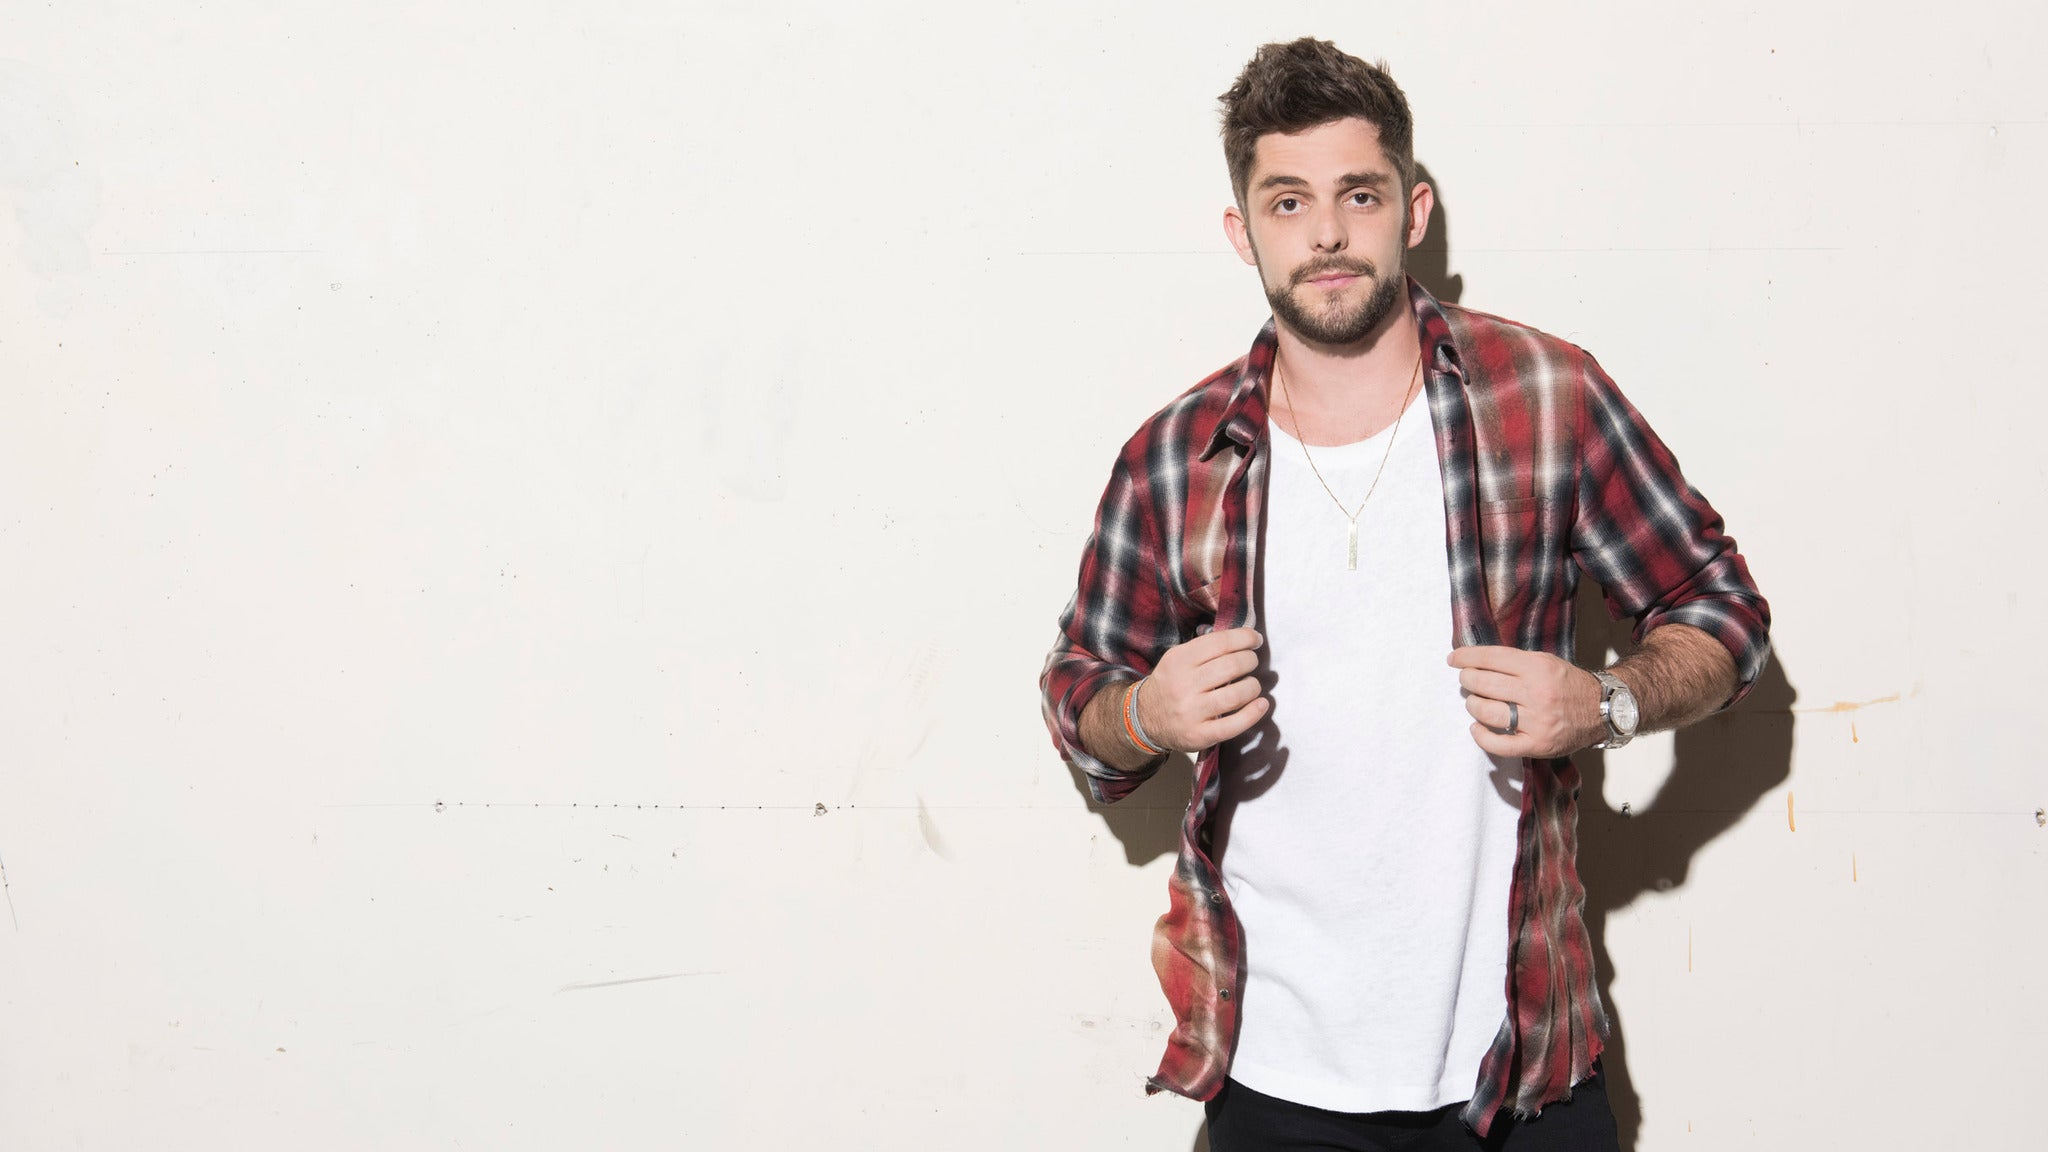 Thomas Rhett - Upgrade VIP Packages at CenturyLink Center